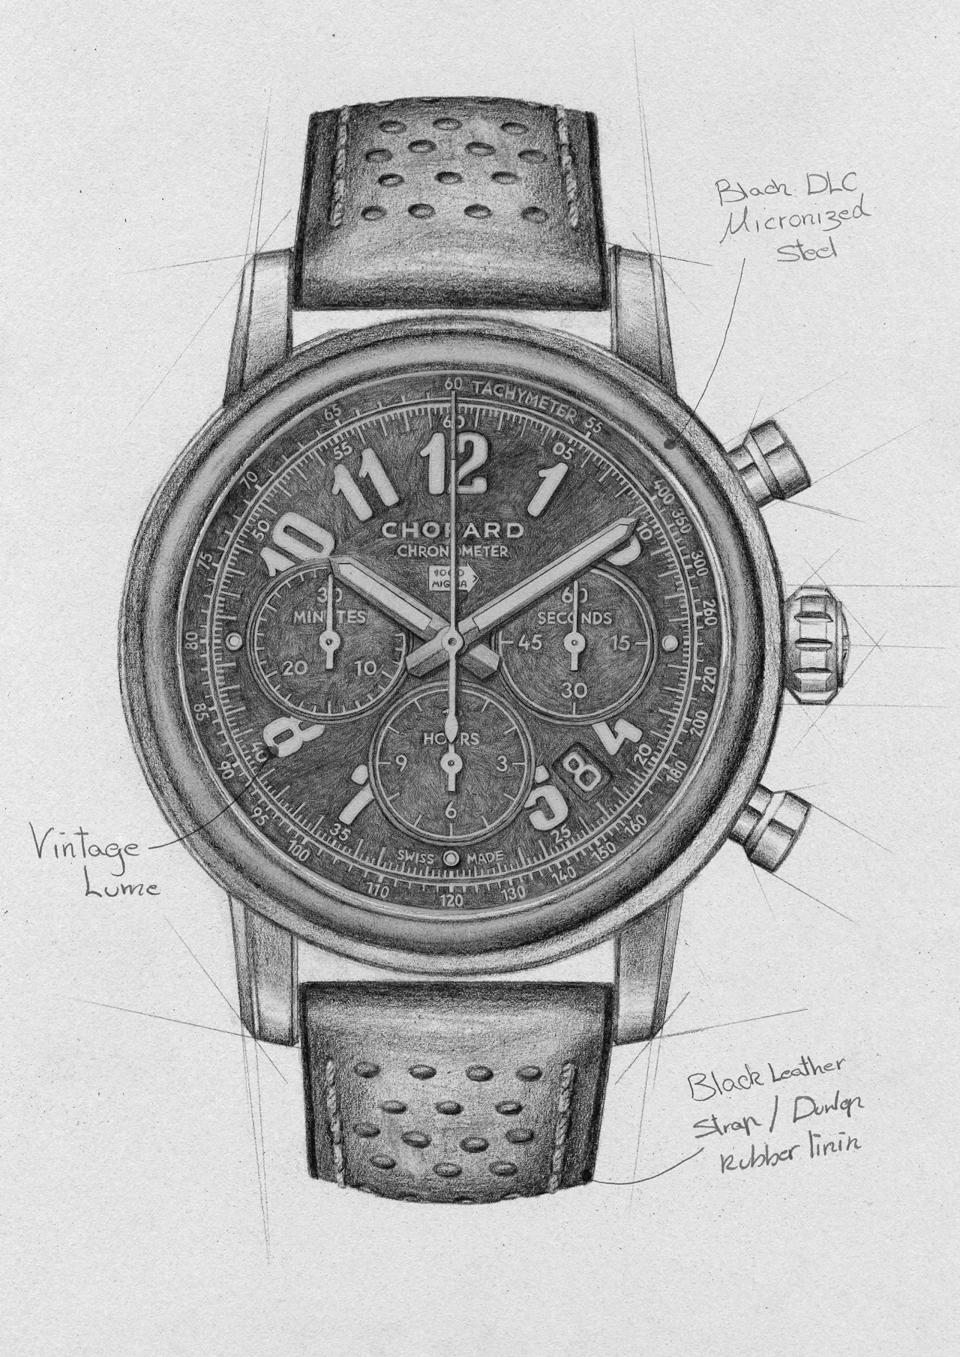 A sketch of the The Mille Miglia 2020 Race Edition